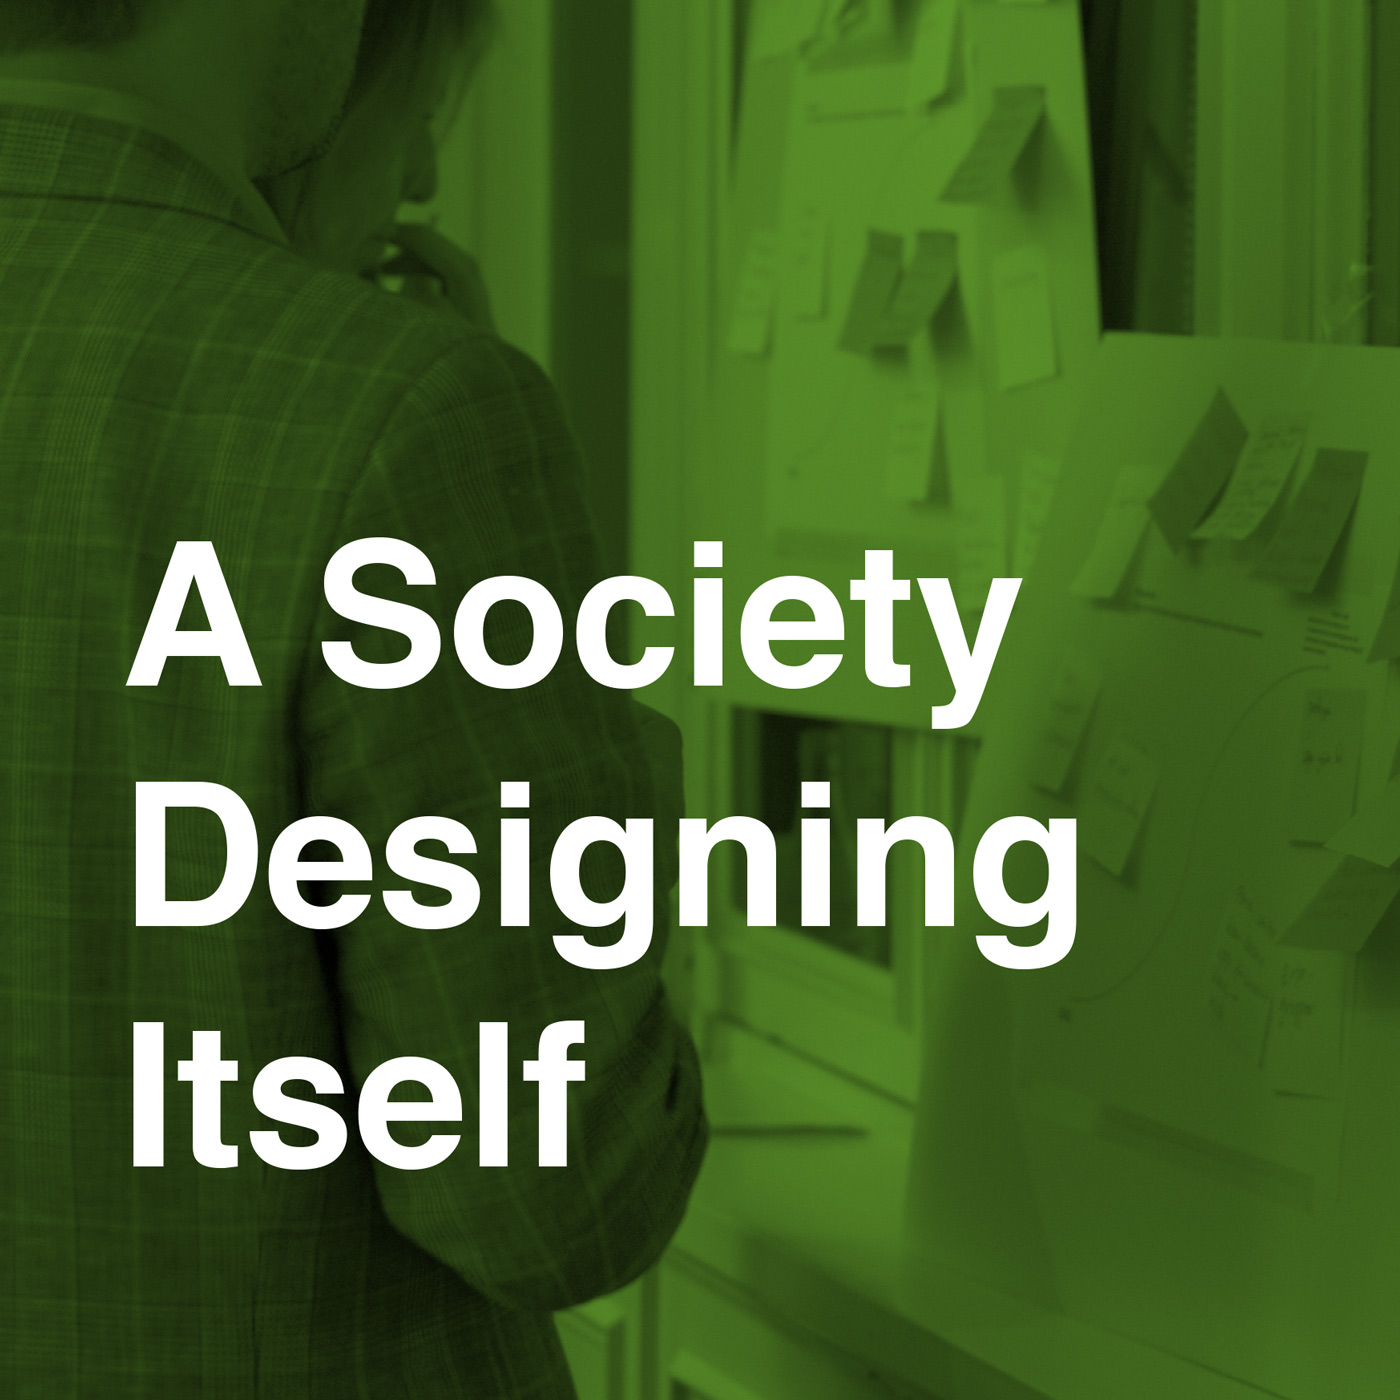 A Society Designing Itself